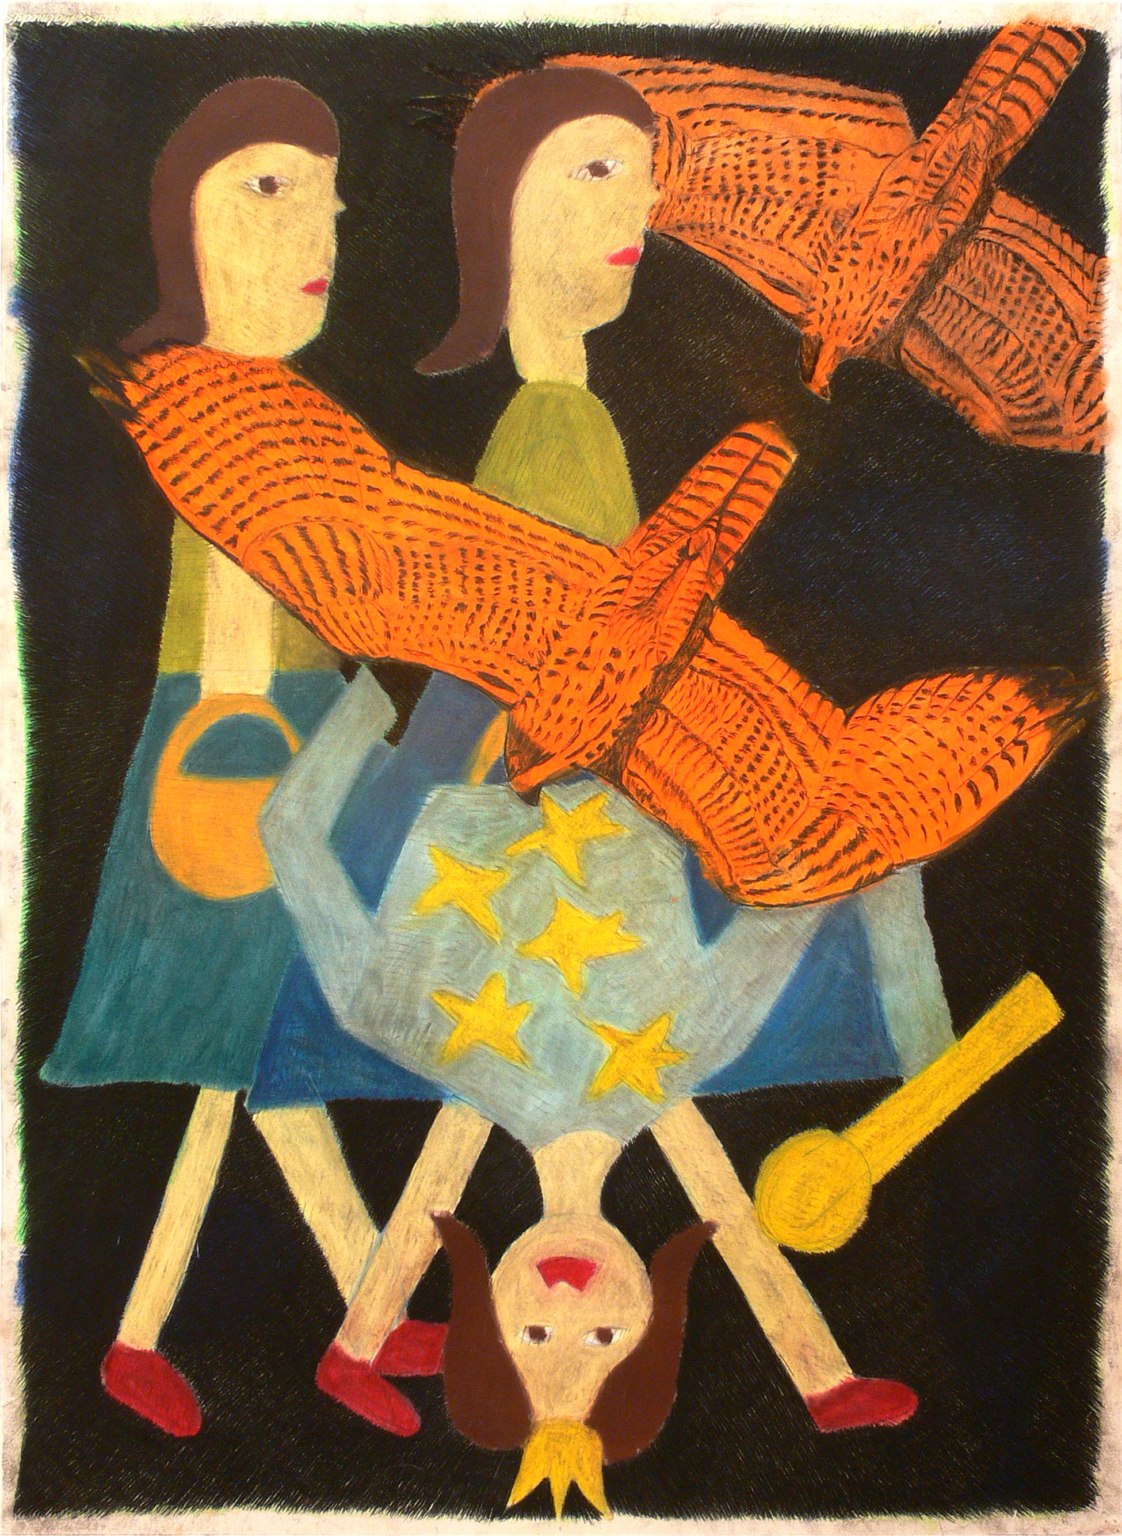 Walking girls and upside-down queen, 2001